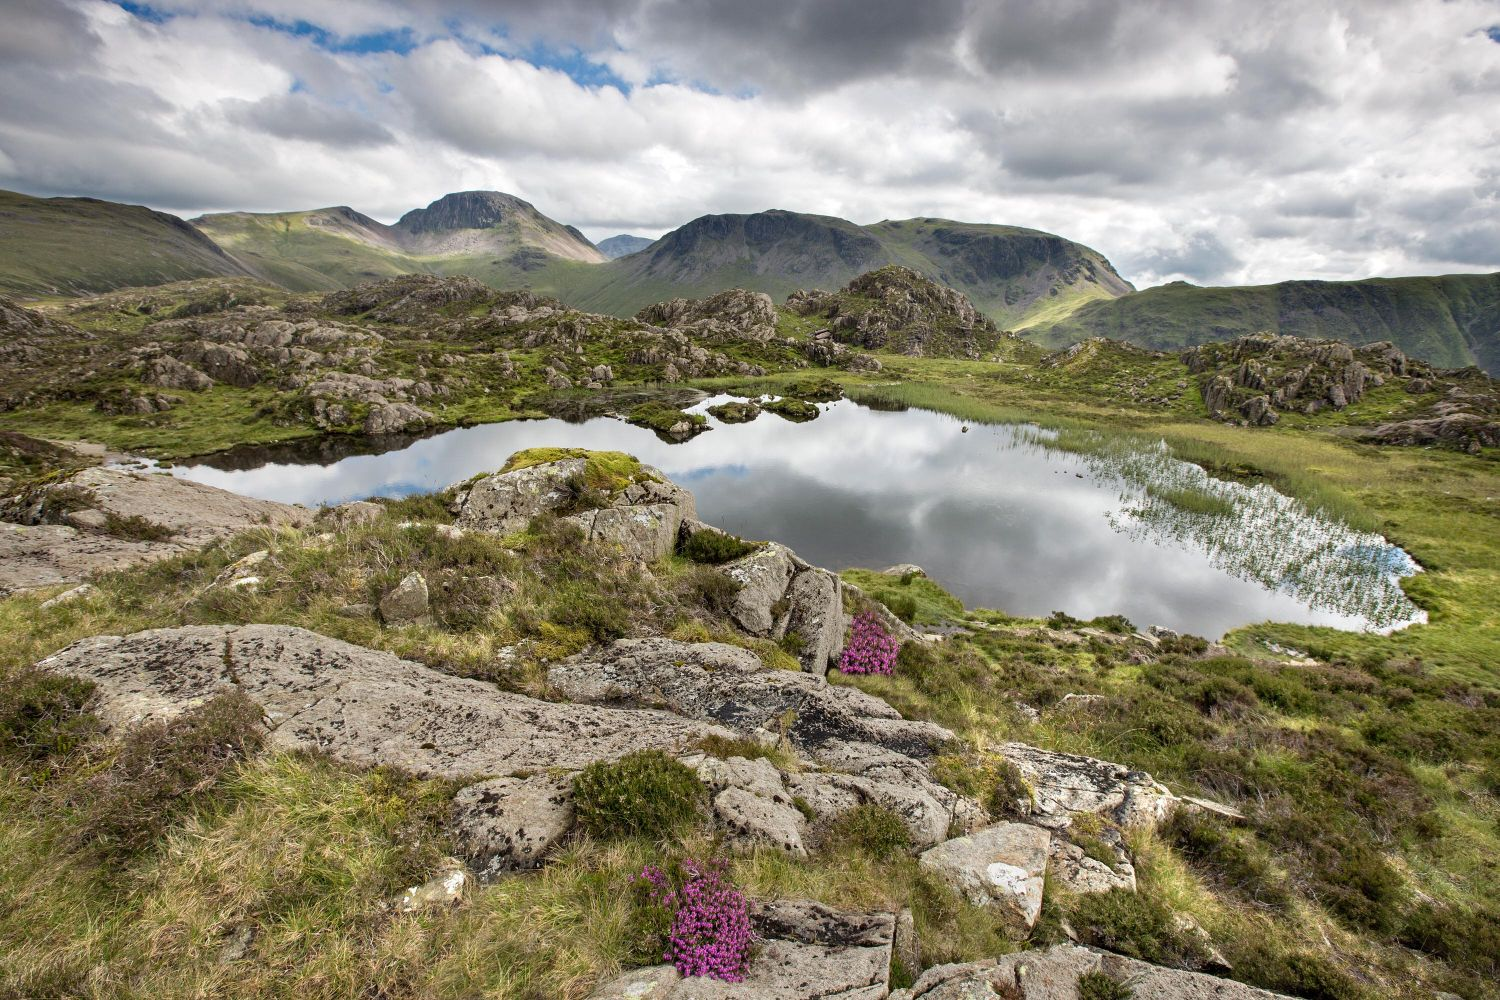 Across Innominate Tarn to Great Gable and Scafell Pike from a higher than normal perspective